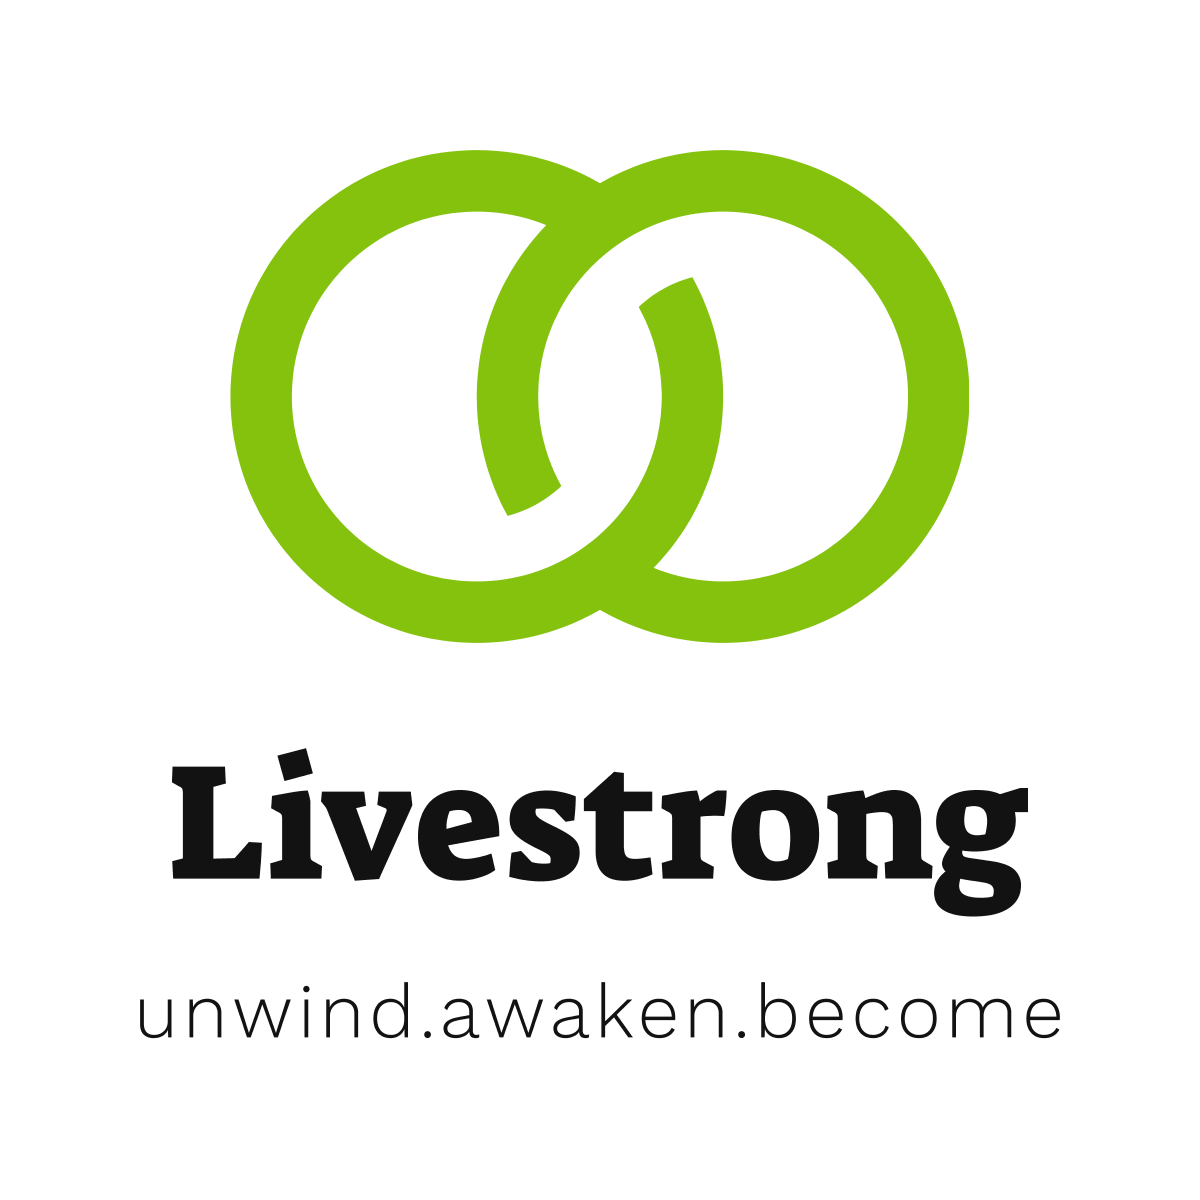 Livestrong, pllc